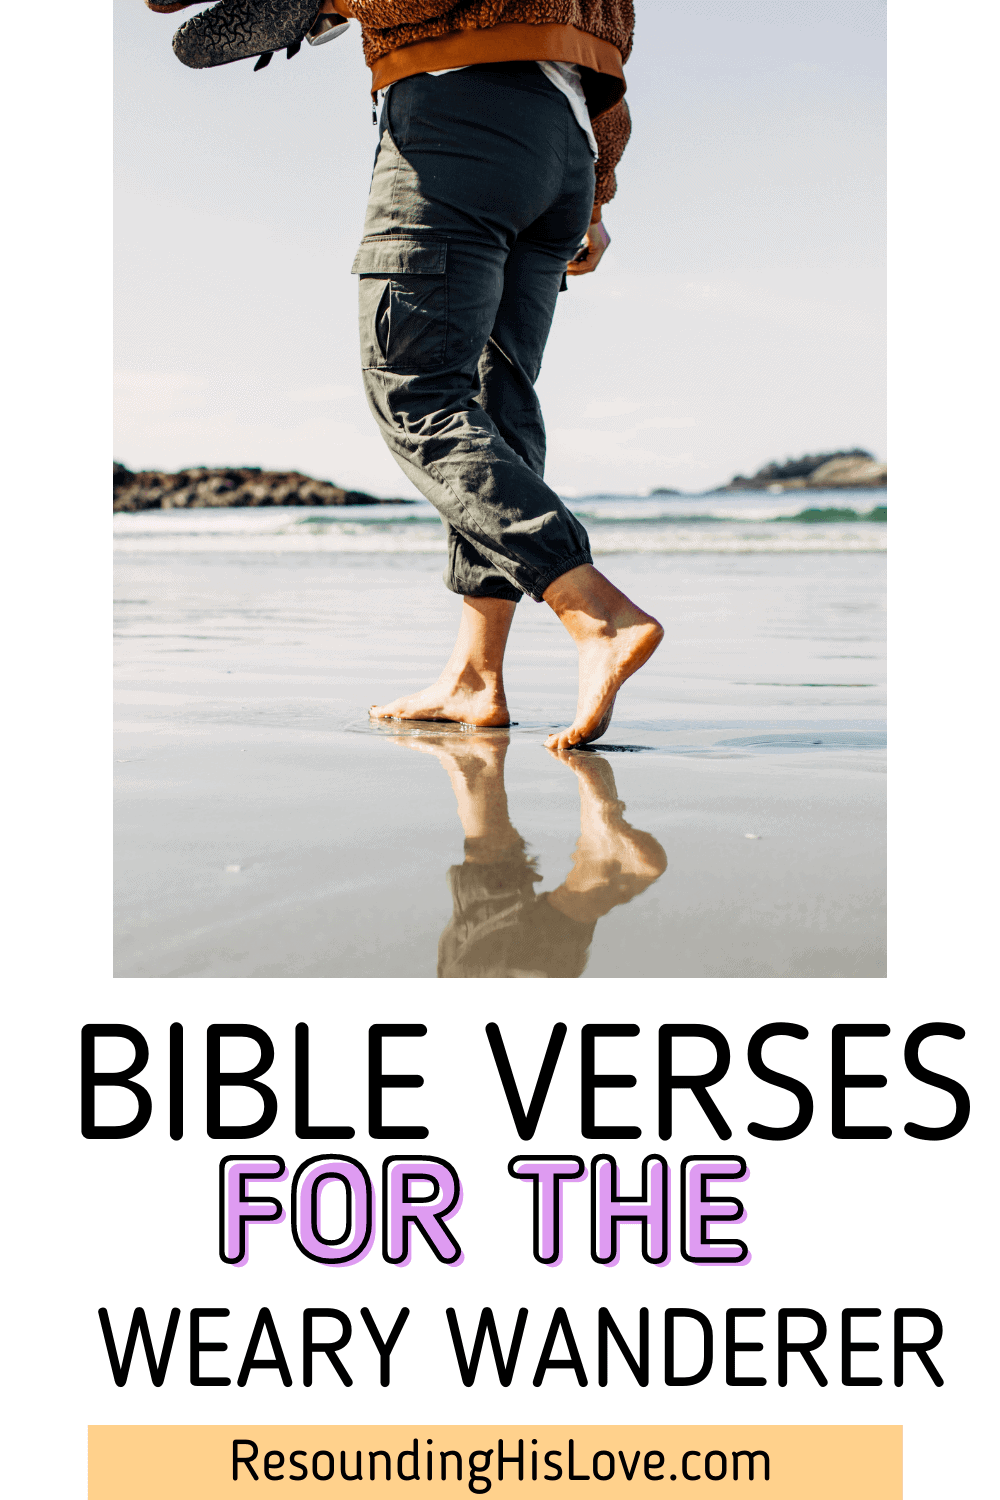 a person walking on the beach barefoot with text Bible Verses for the Weary Wanderer